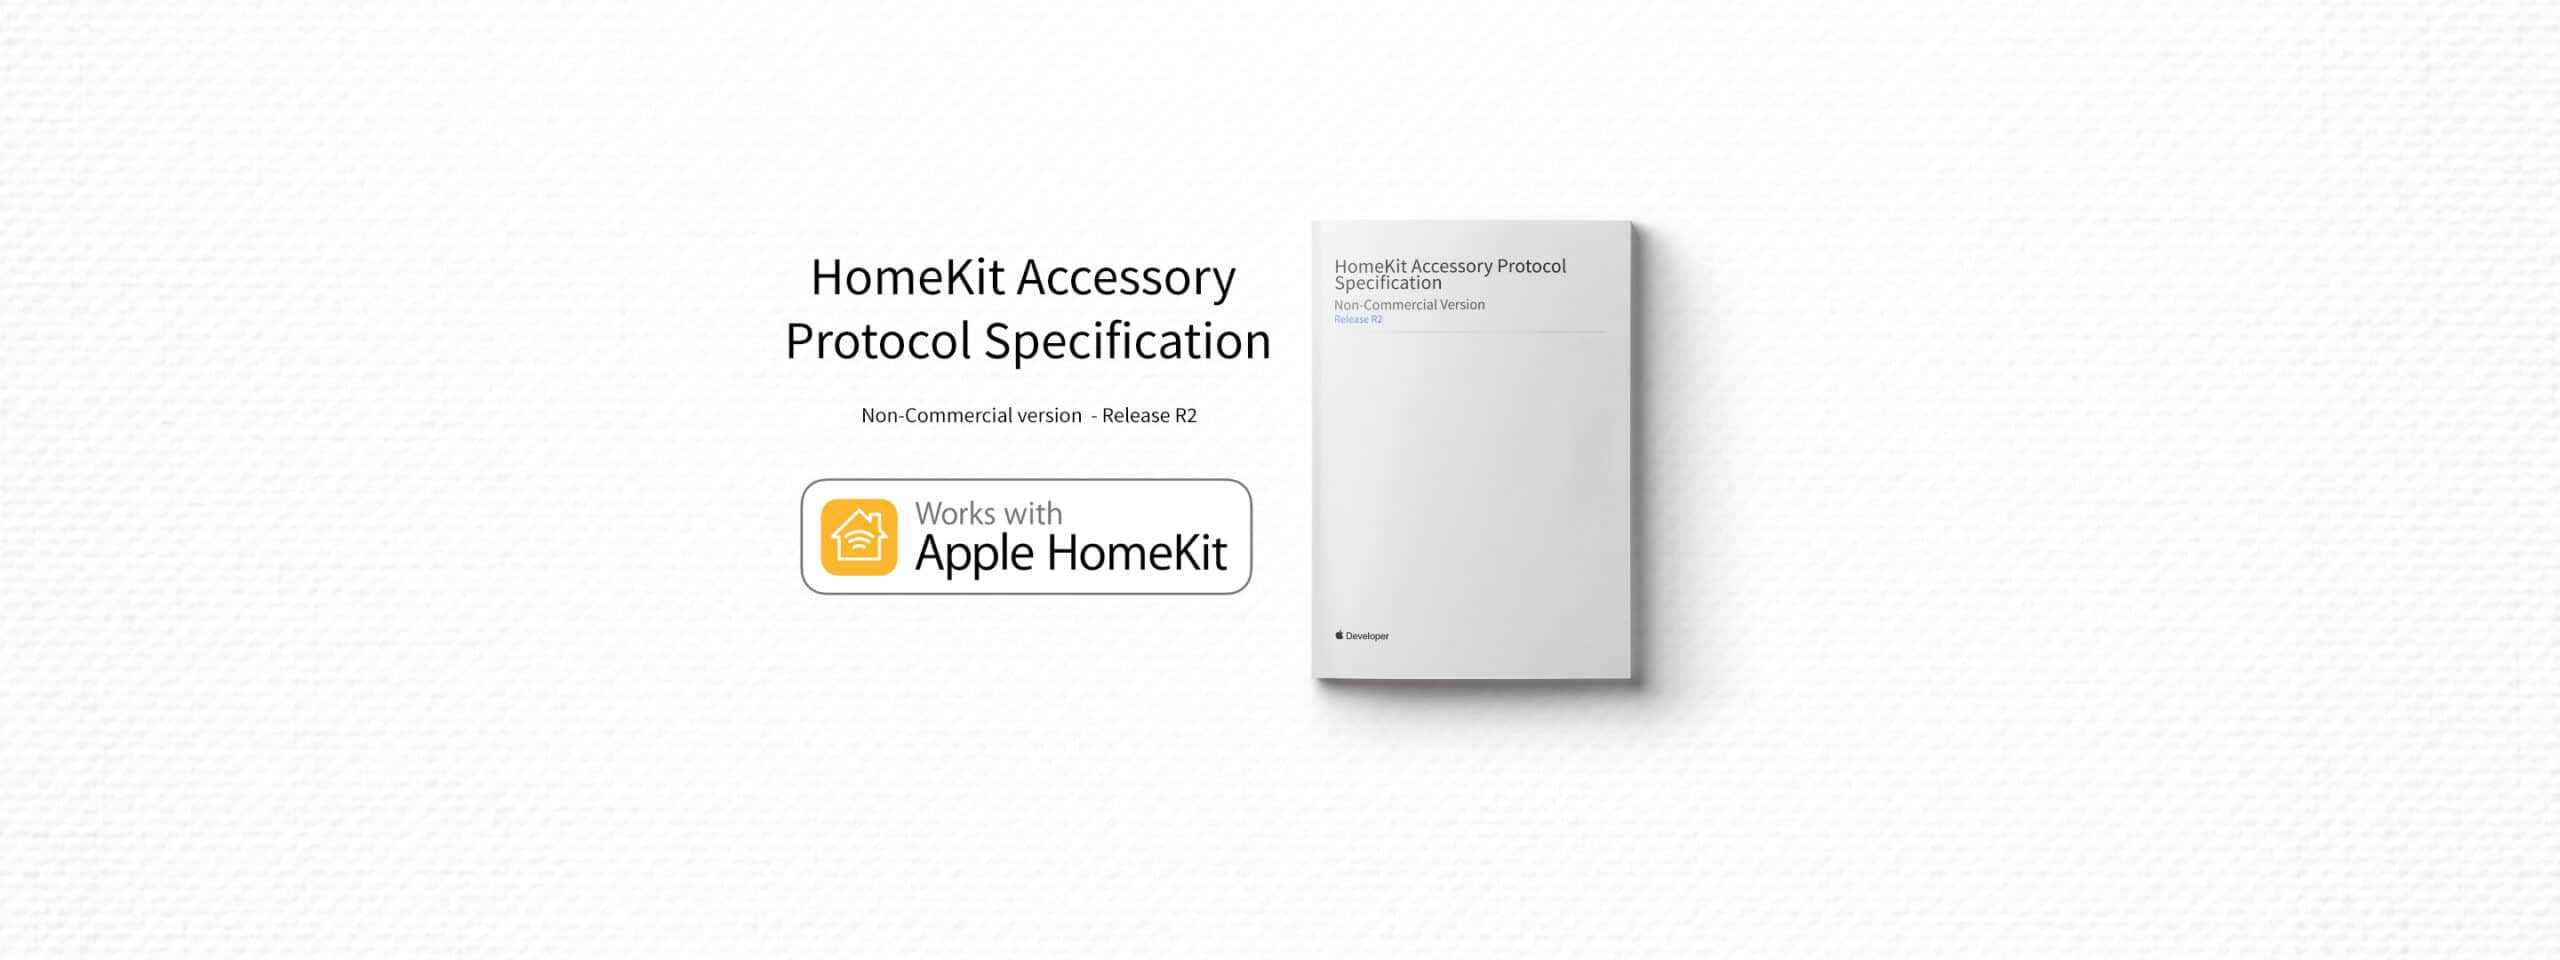 HomeKit Accessory Protocol Specification